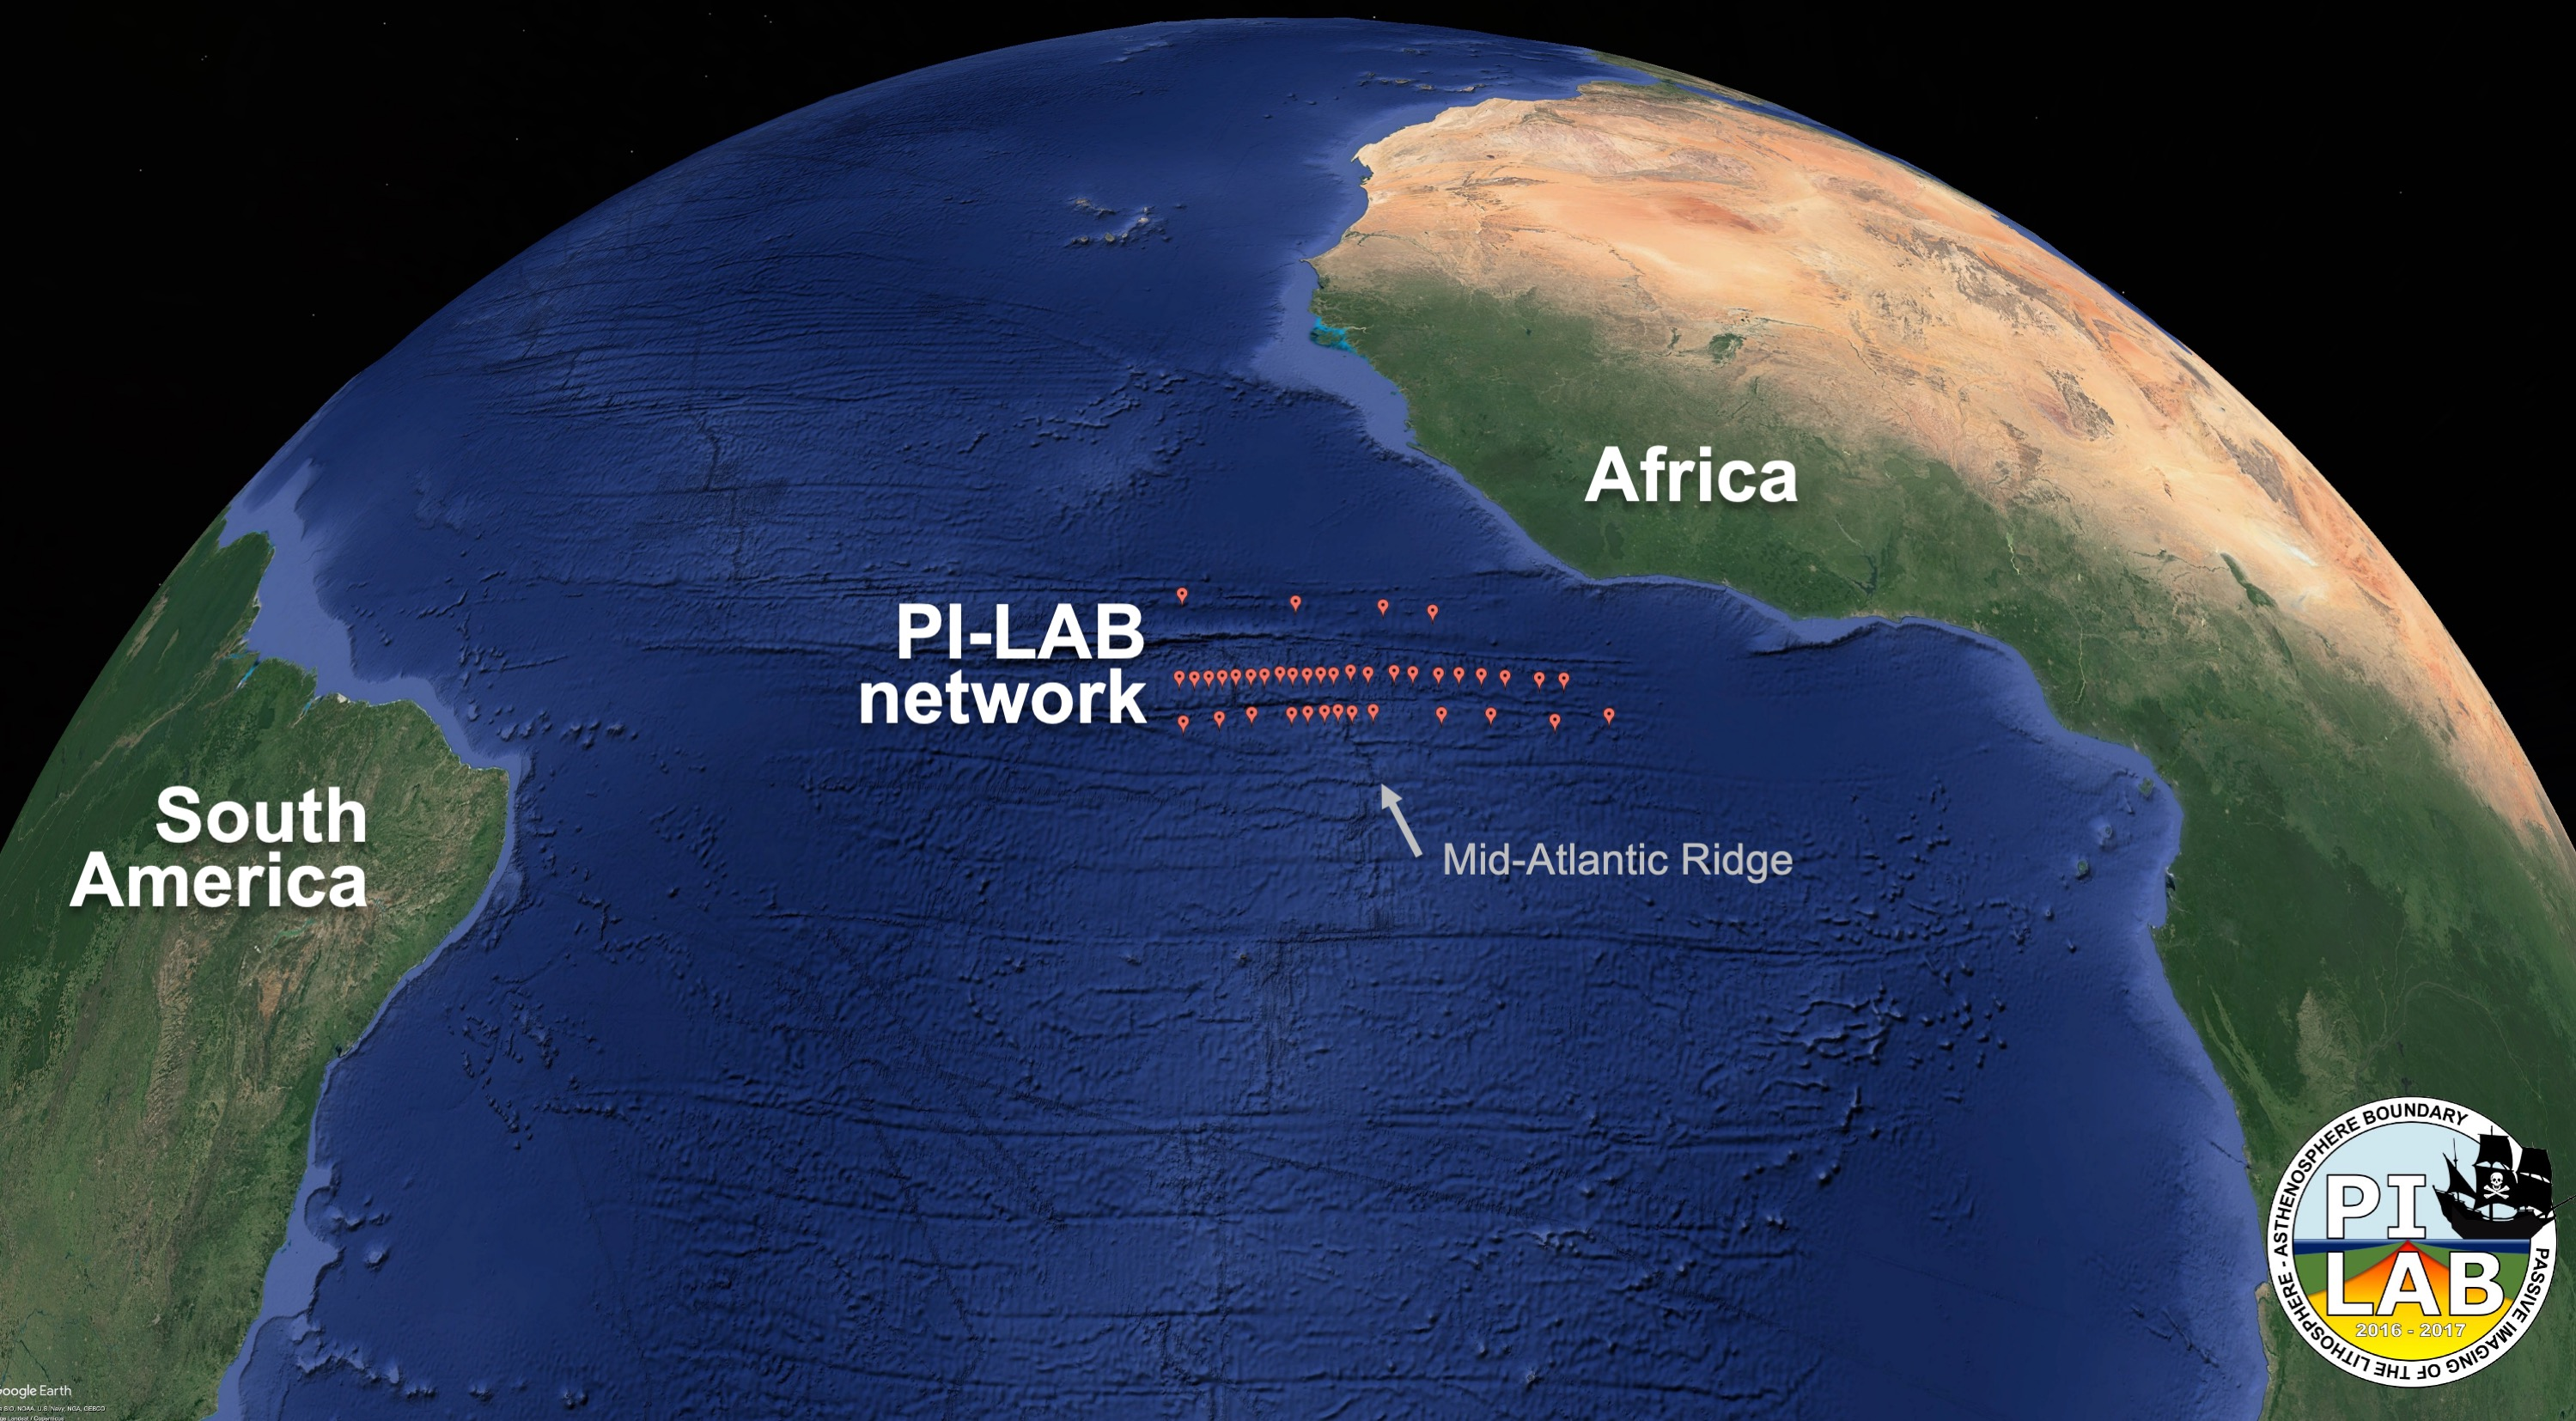 39 seismometers were places across a span of hundreds of miles on the Mid-Atlantic Ridge.